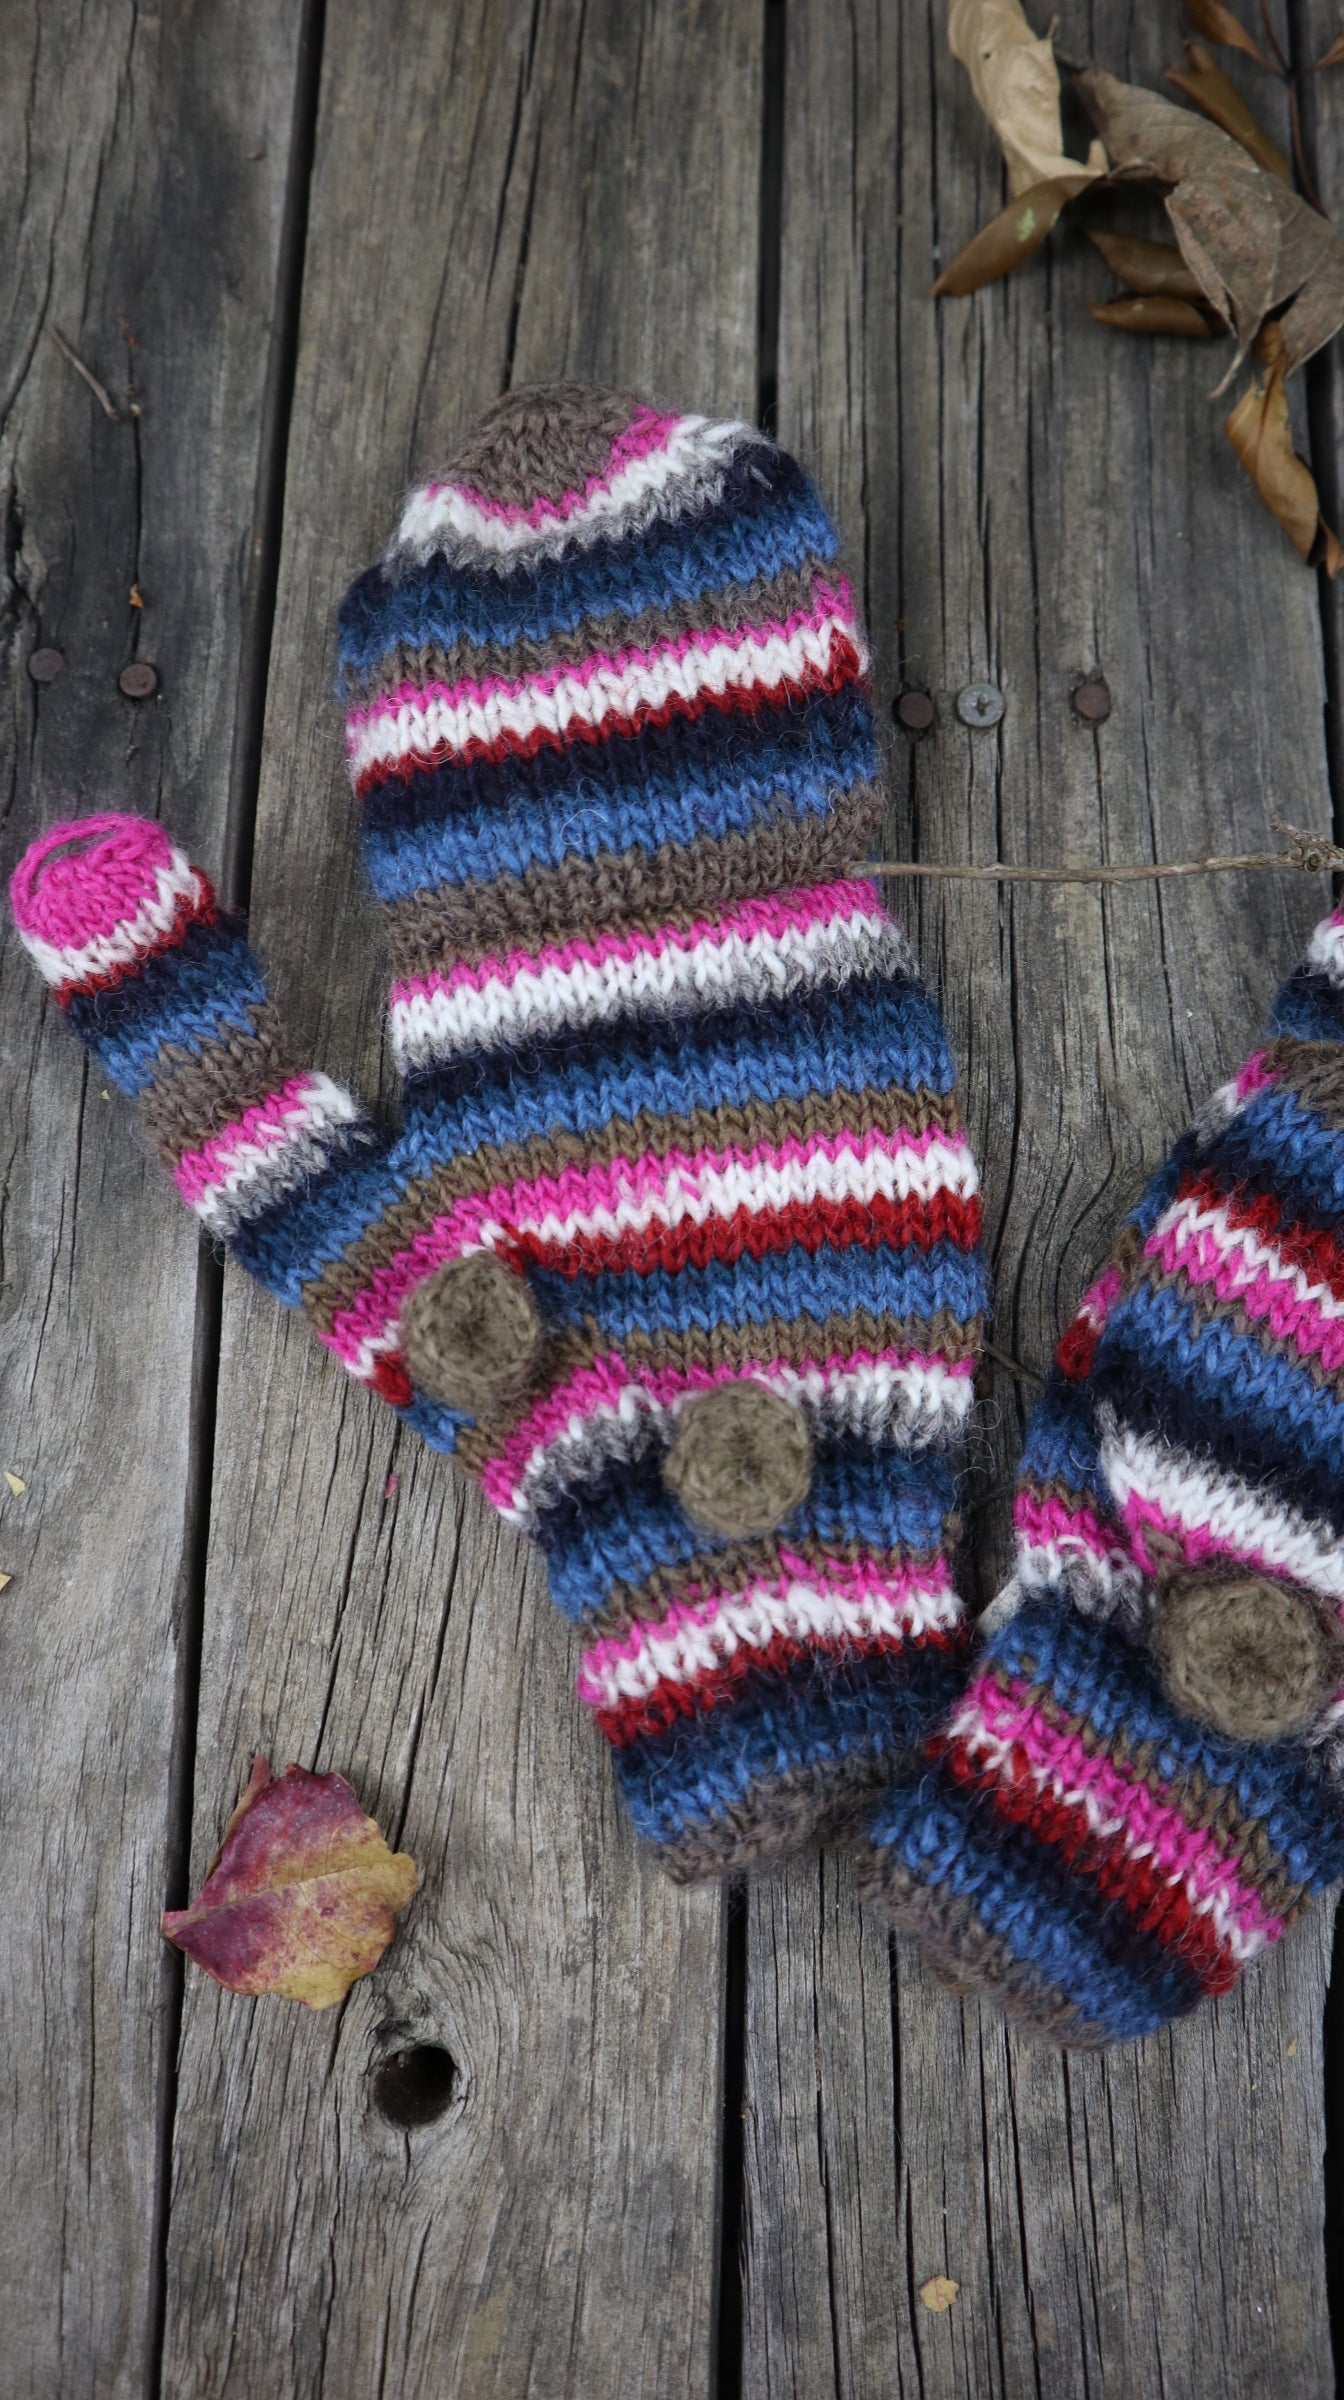 Fair Trade Ethical Children's Striped Fingerless Gloves with Cap in Pink, Brown and Black